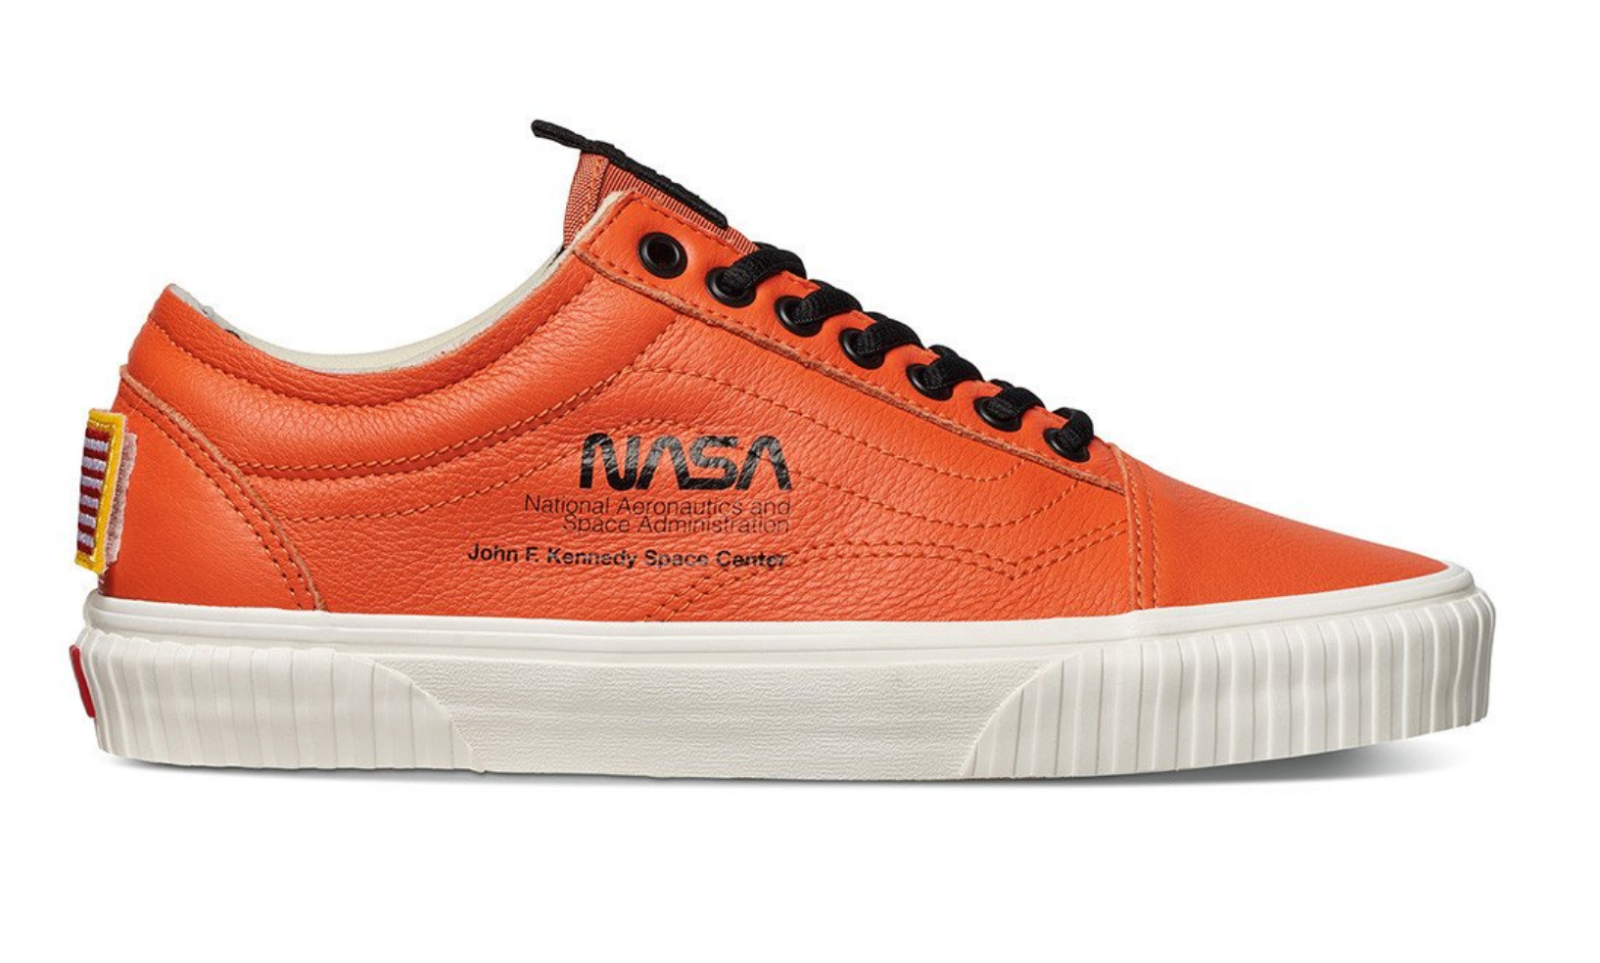 Vans Nasa Old Skool Size 9.5 Firecracker Orange Space #Voyager Brand ...